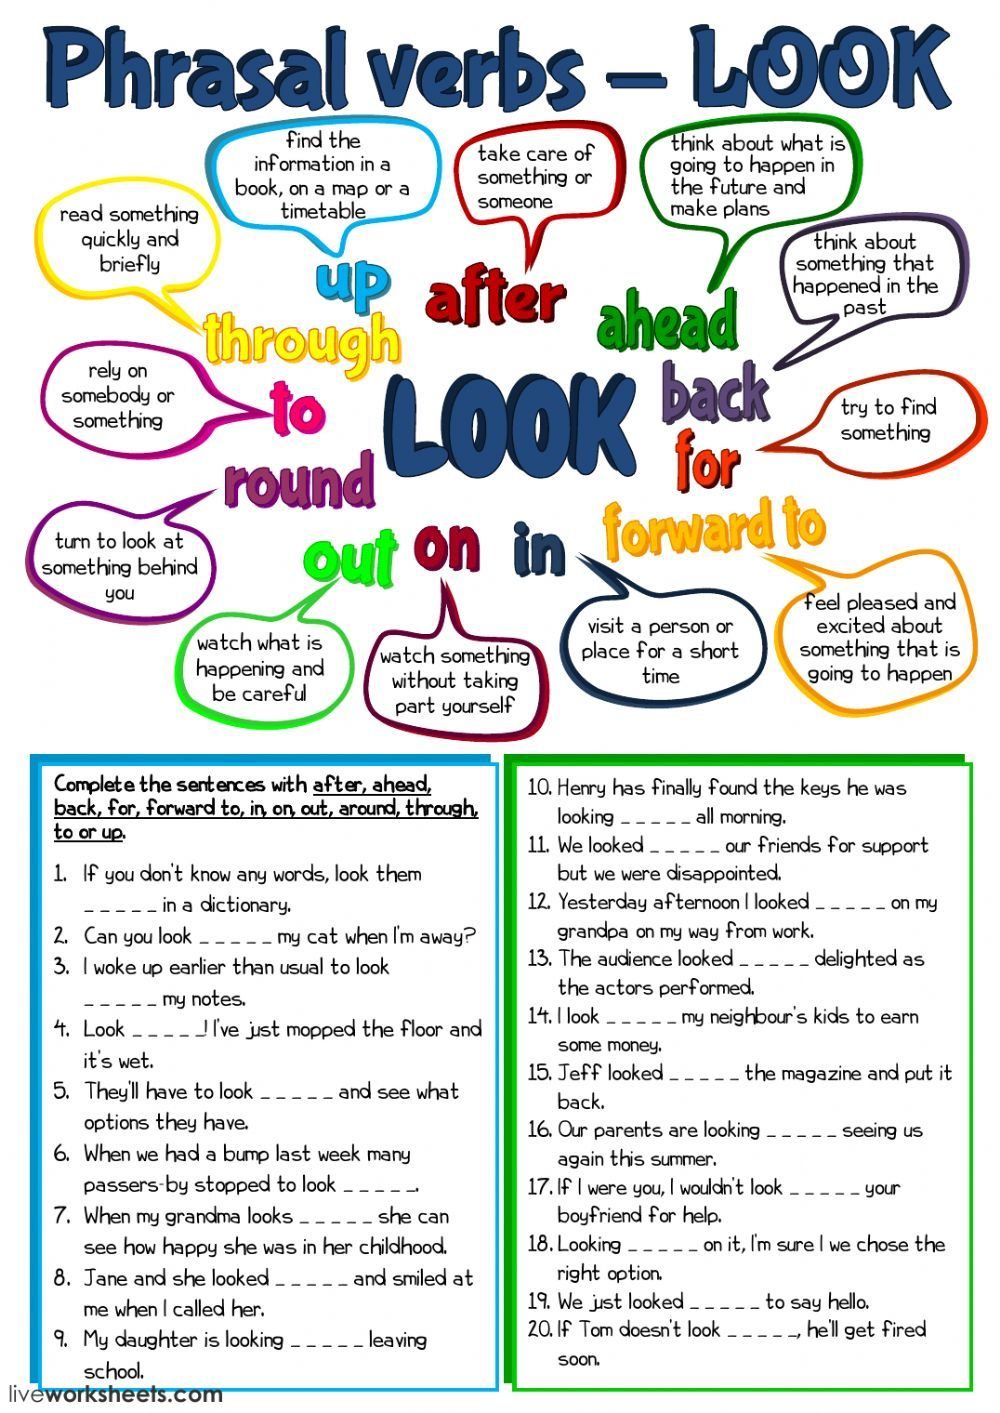 Phrasal Verbs Interactive And Downloadable Worksheet You Can Do The Exercises Online Or Download The Workshe Verb Worksheets English As A Second Language Verb [ 1413 x 1000 Pixel ]